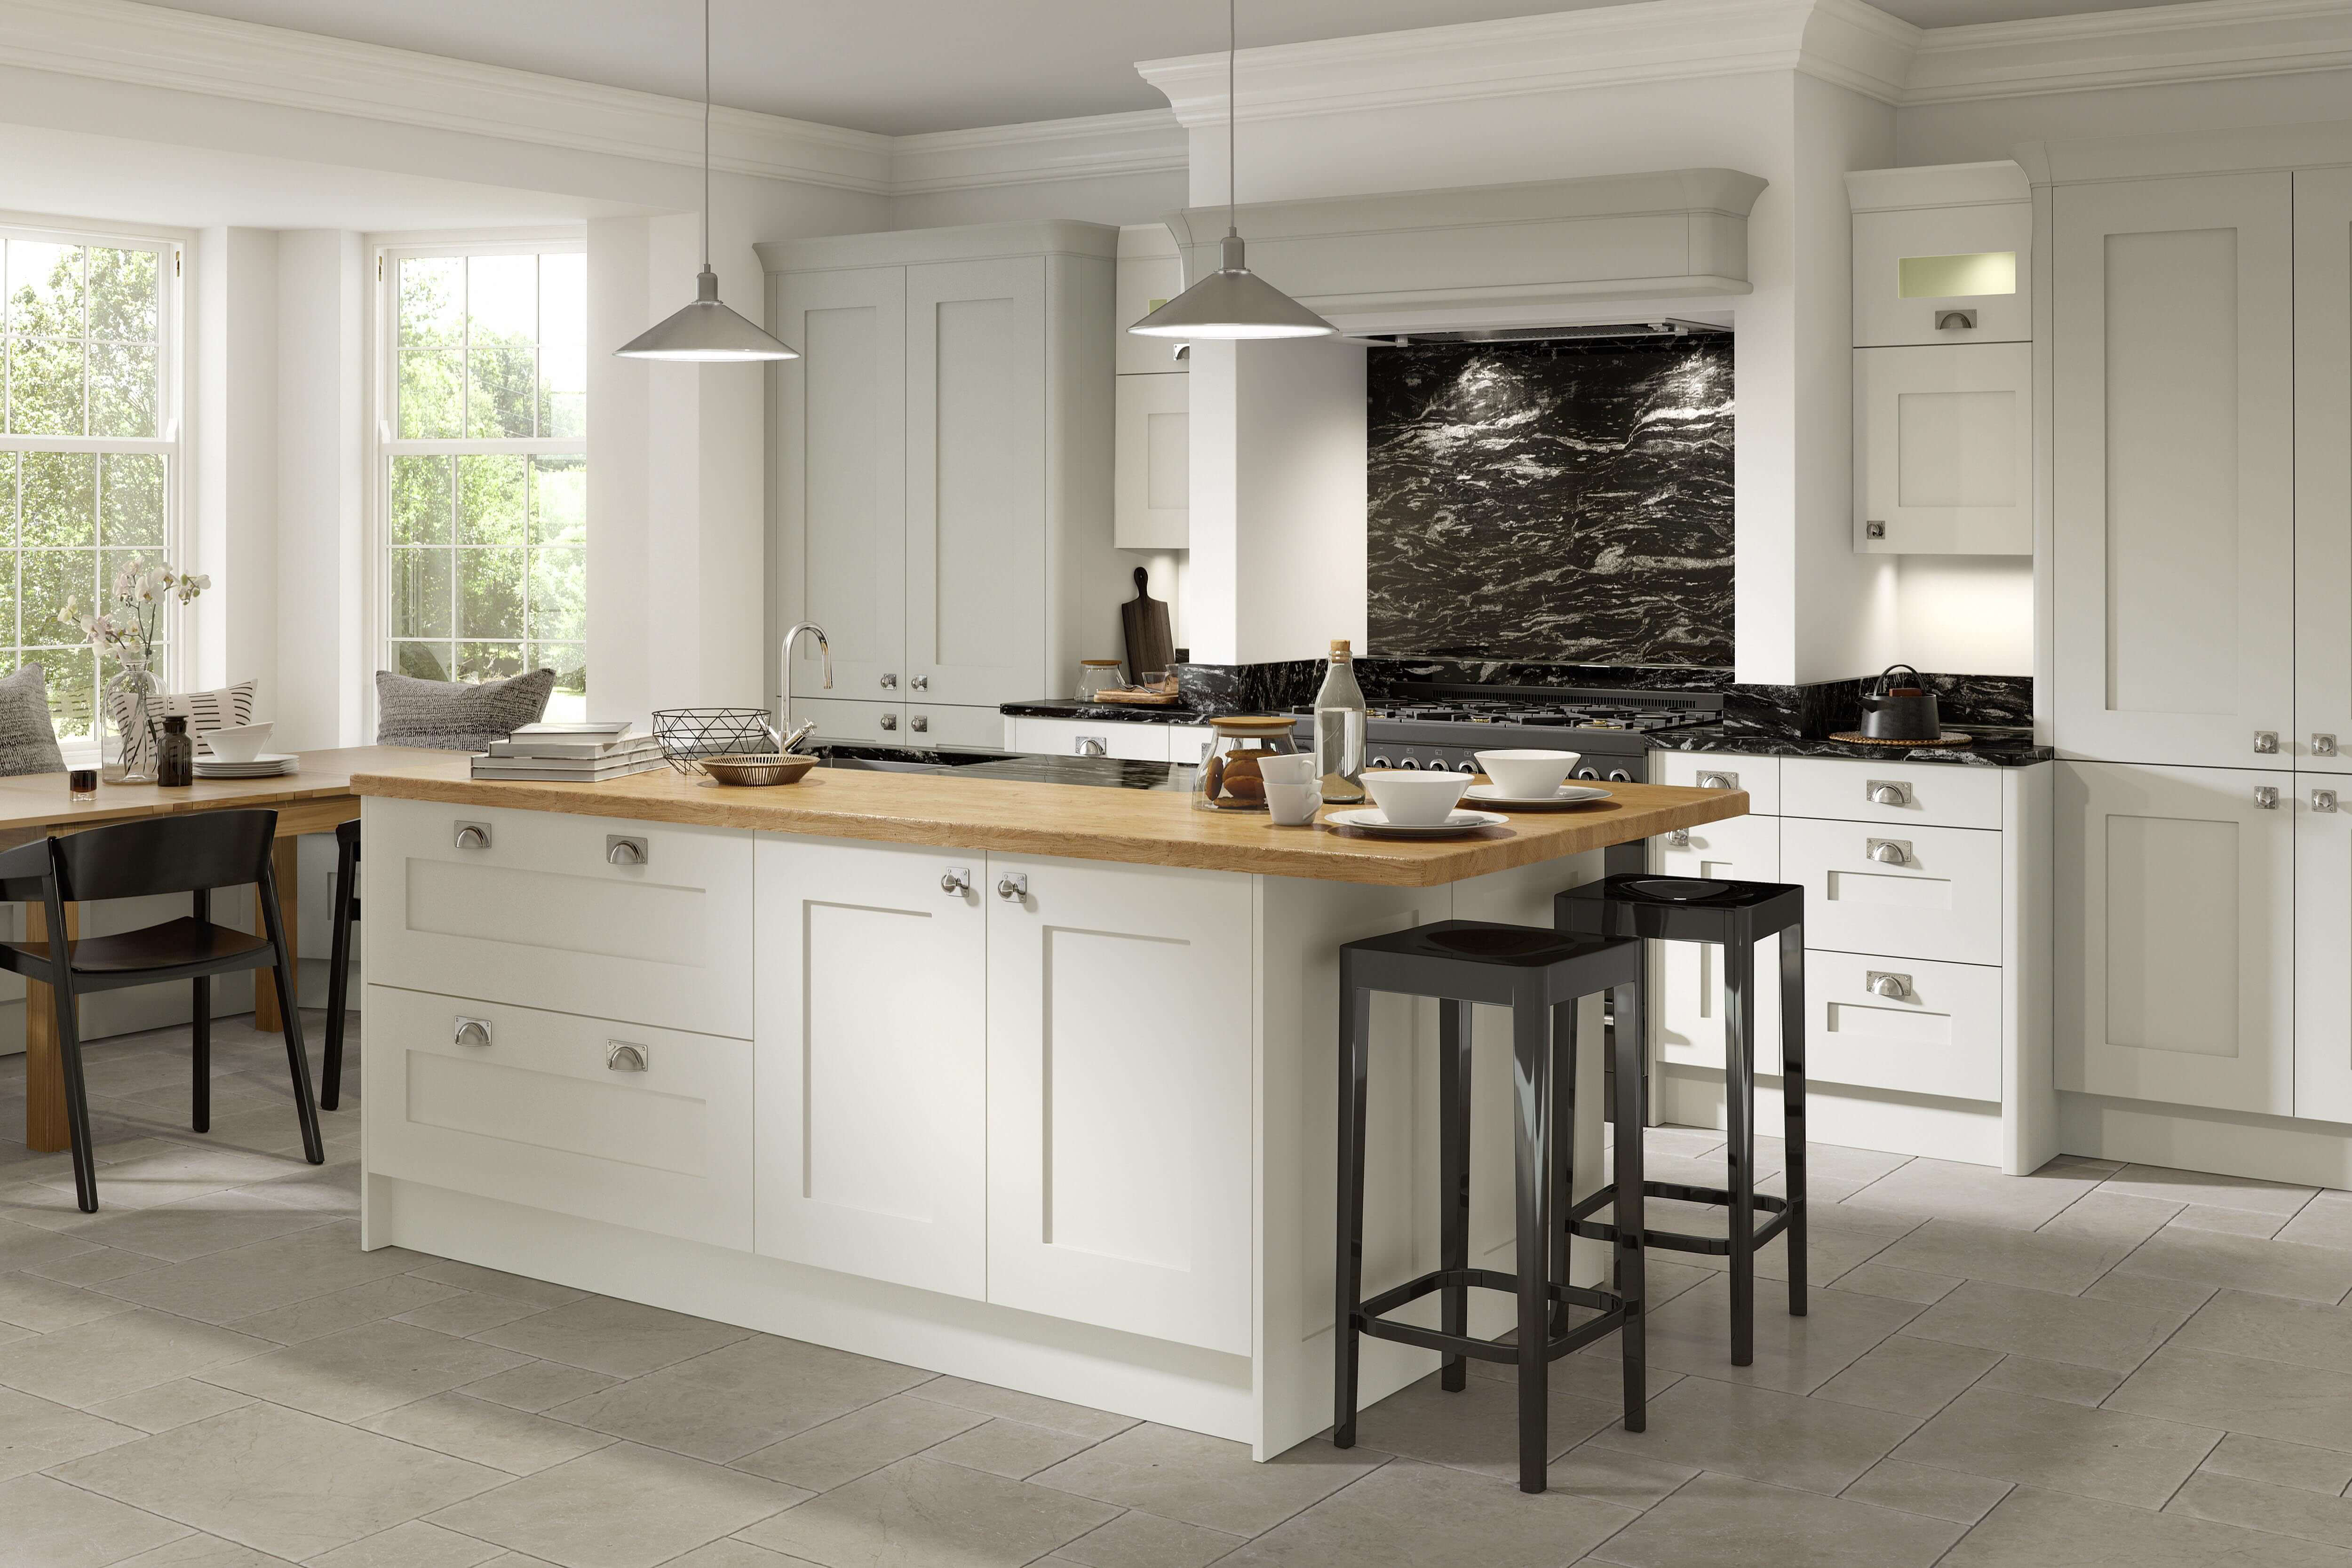 Alchemy-Kitchens-Fitzroy-Gallery4